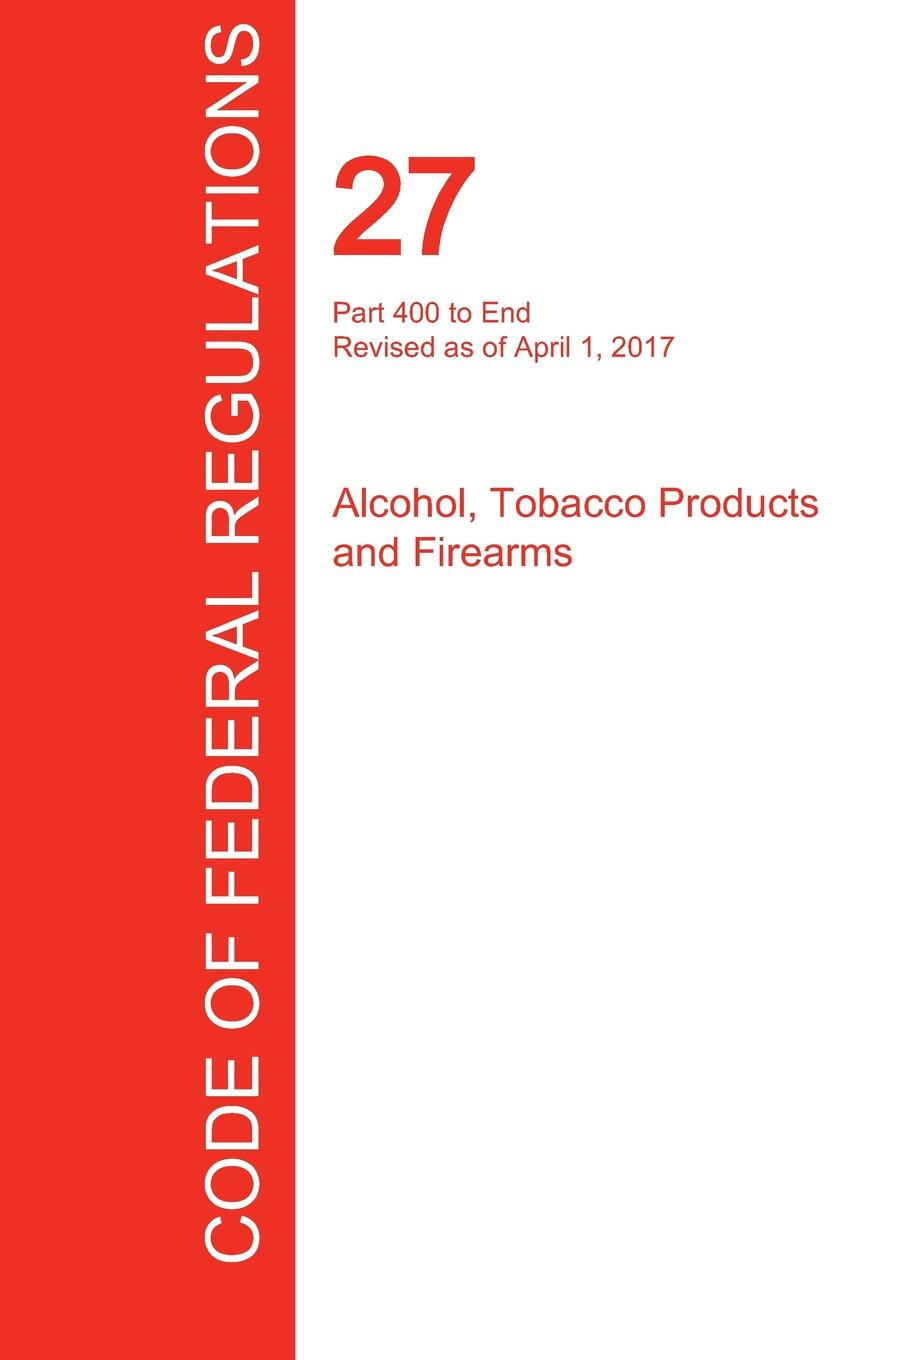 CFR 27, Part 400 to End, Alcohol, Tobacco Products and Firearms, April 01, 2017 (Volume 3 of 3) fiske john tobacco and alcohol